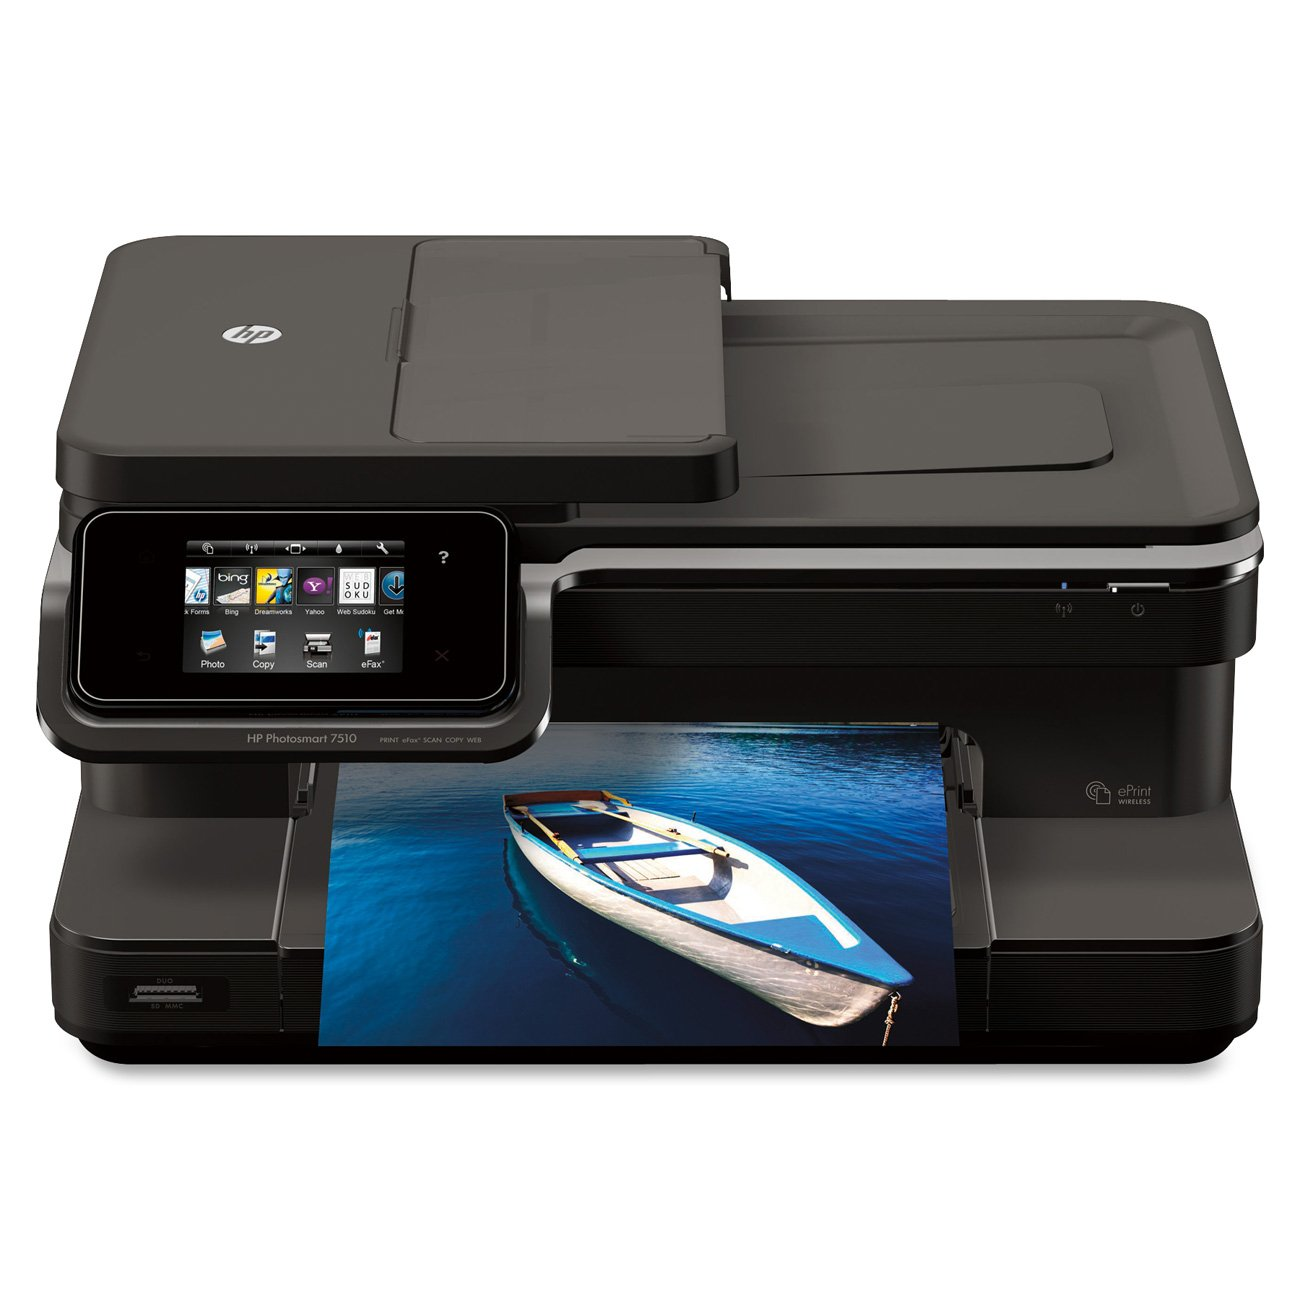 Eco-friendly and economical HP Photosmart 7260 printer 99